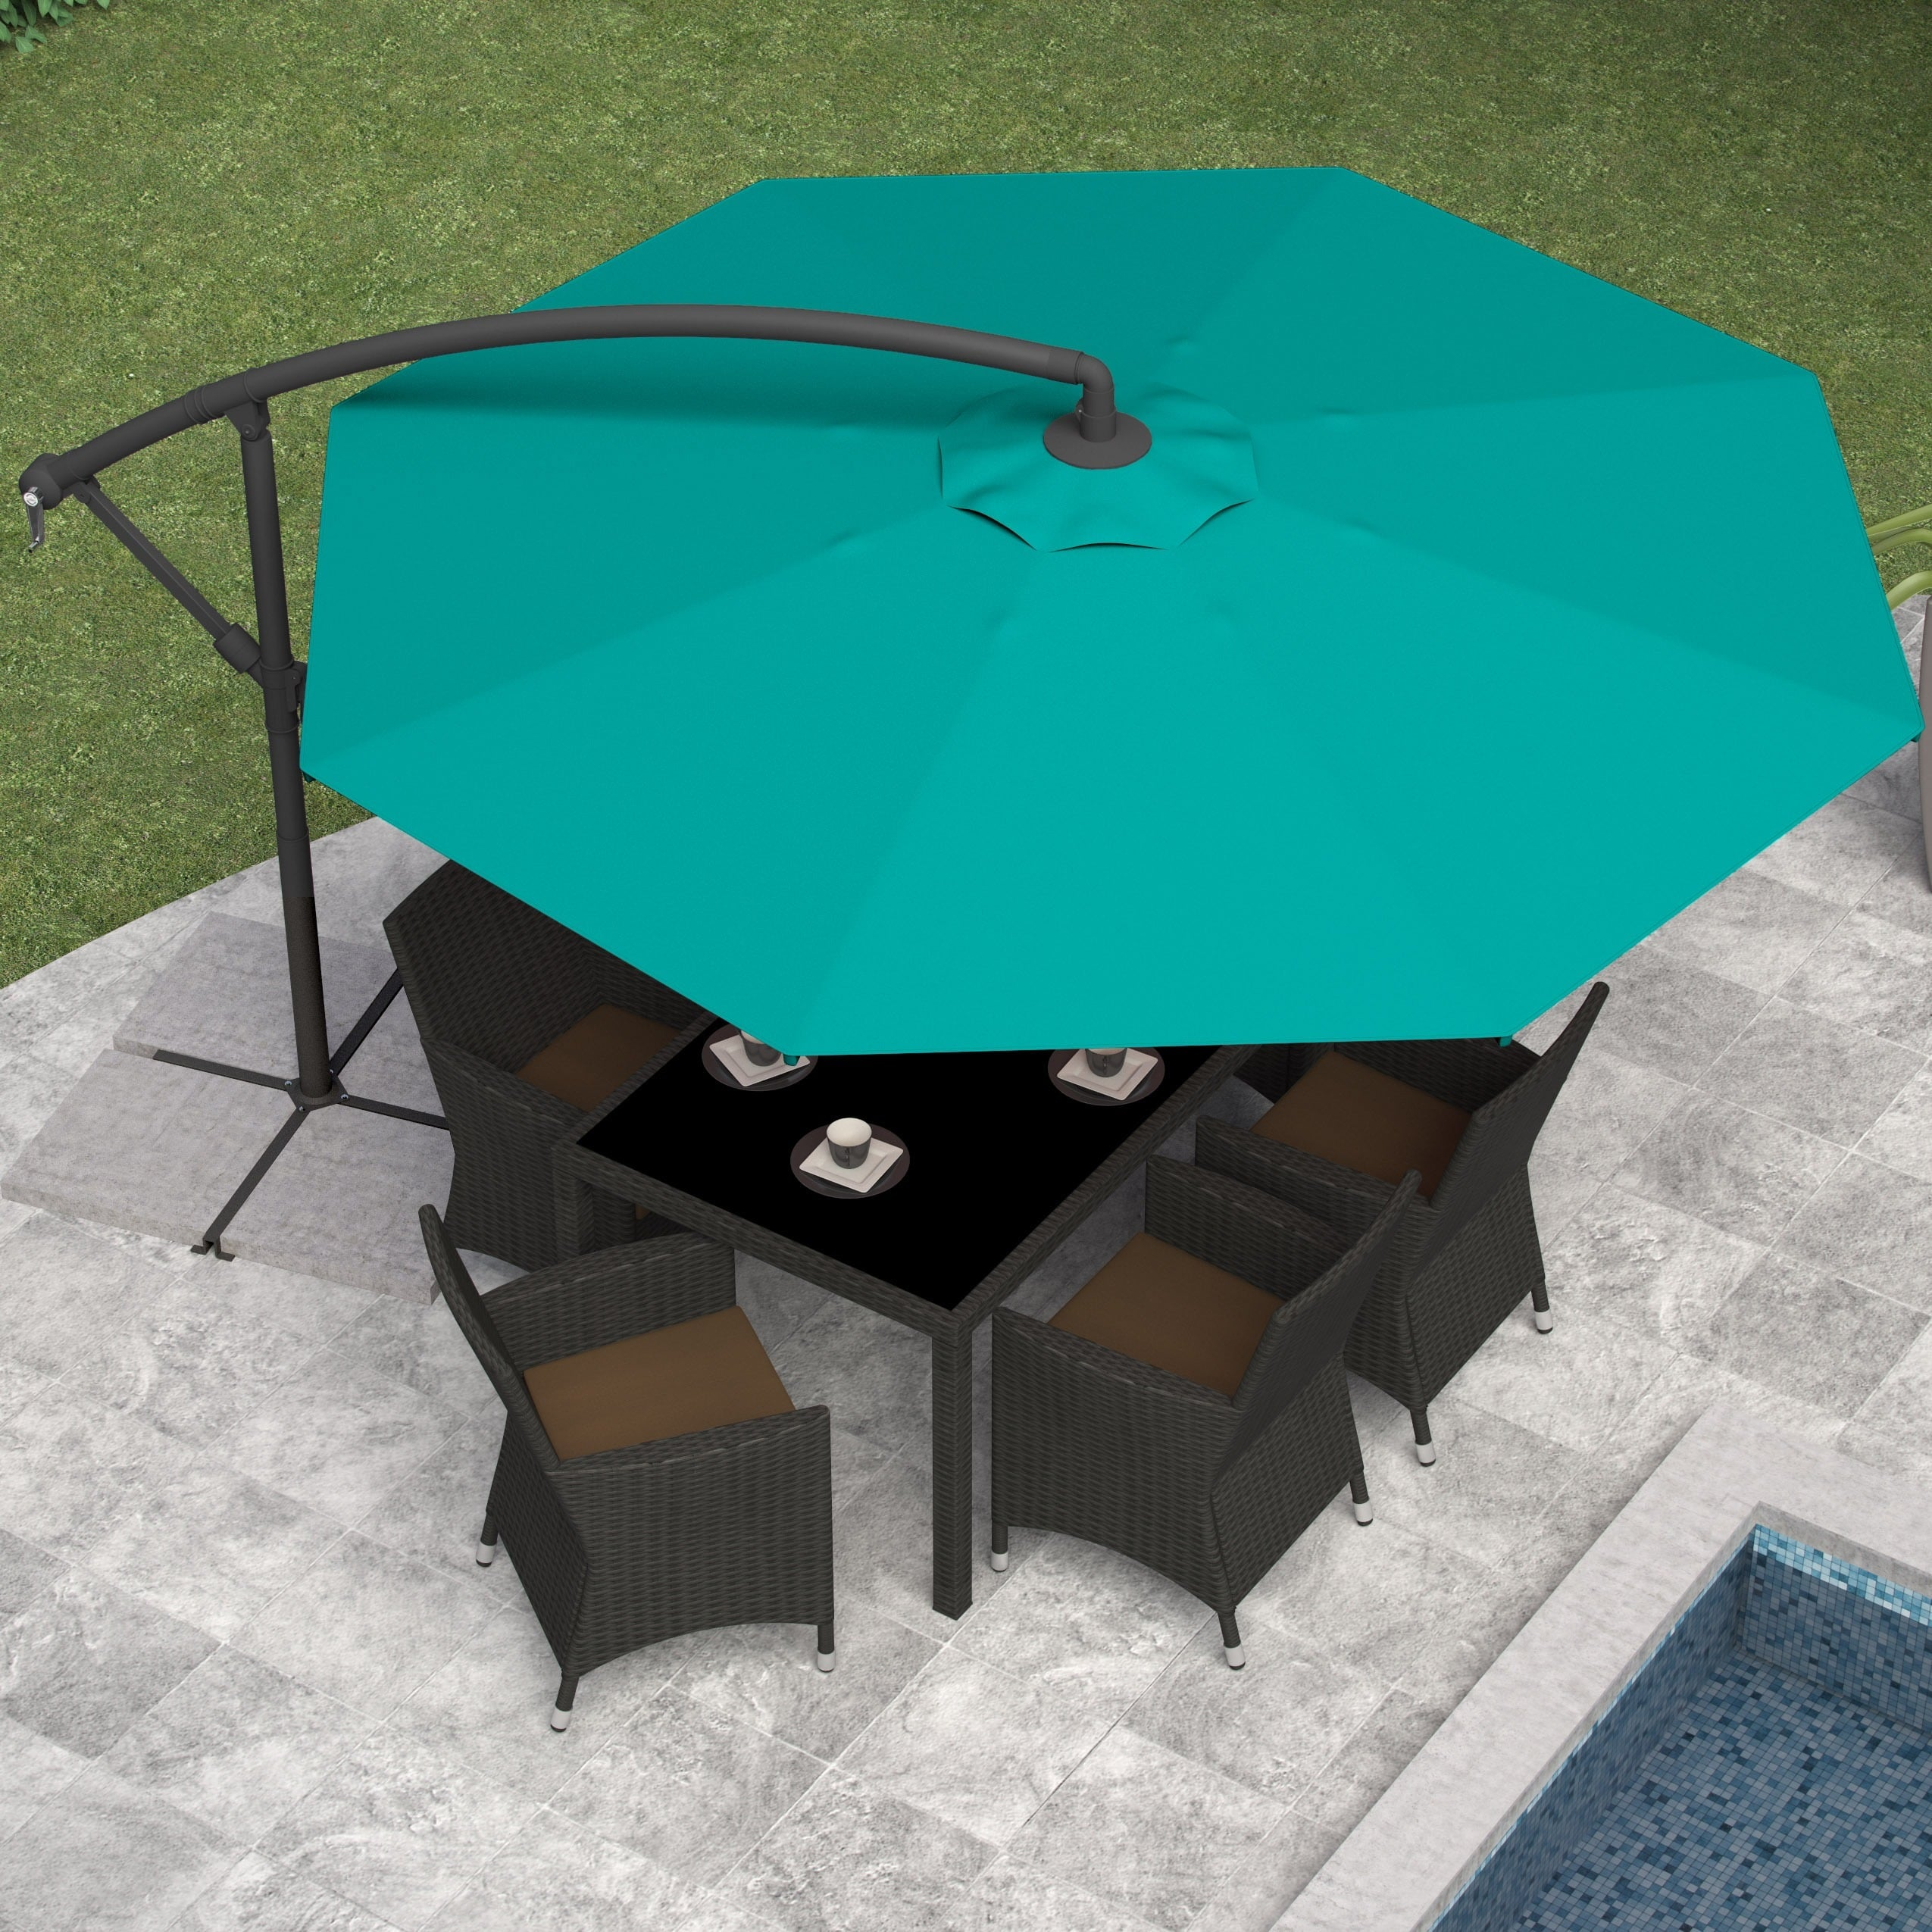 amazon polyester umbrella dp offset feet deluxe garden umbrellas patio tan trademark lawn ca innovations